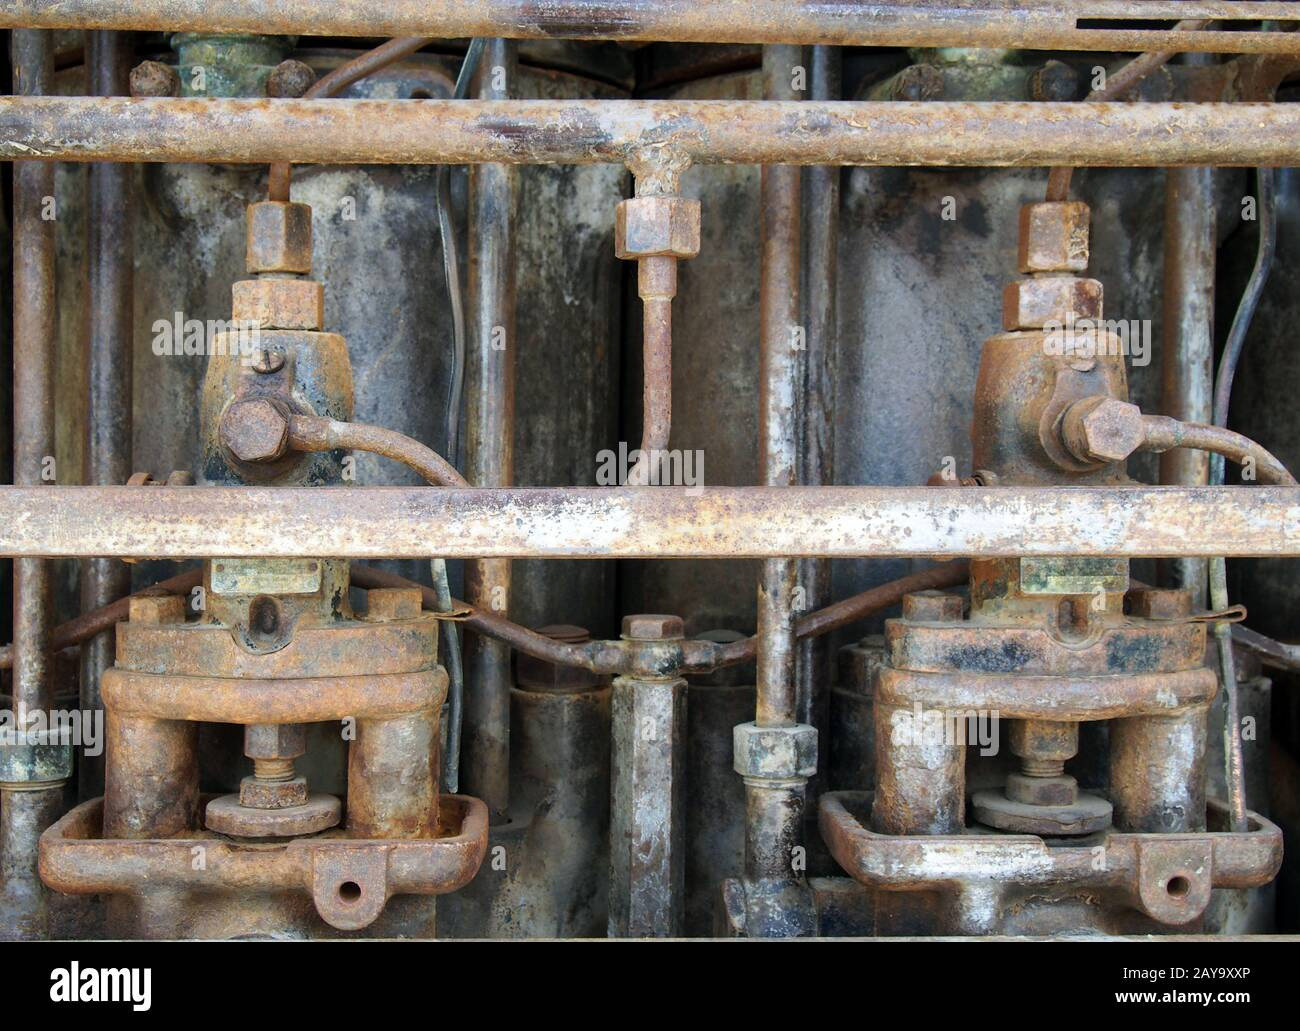 Close up of an old big rusting diesel engine with cylinders and pipes Stock Photo